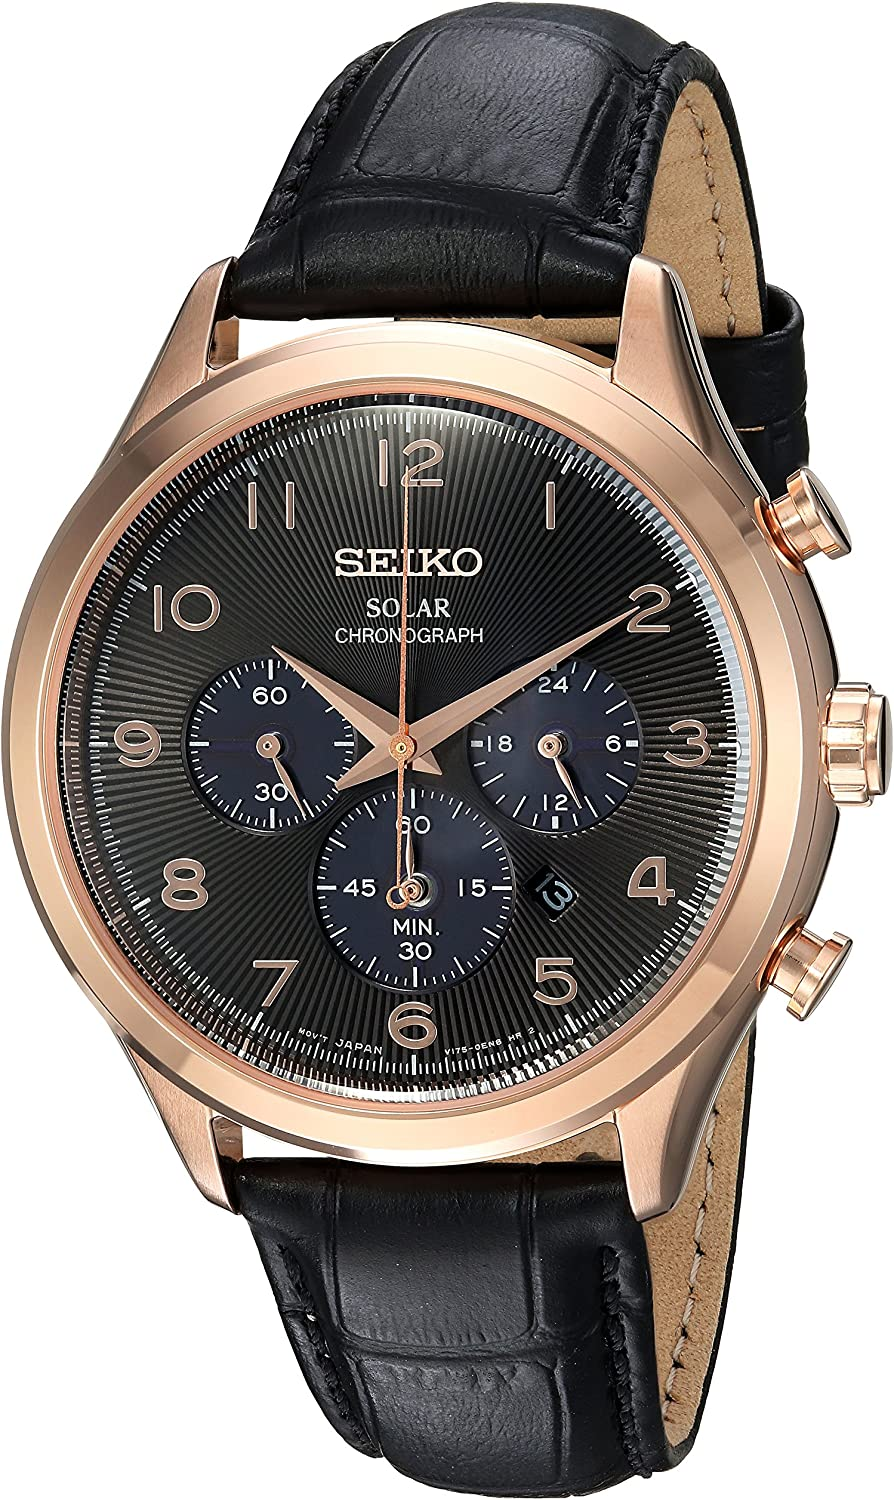 Seiko Mens Solar Chronograph Stainless Steel Japanese-Quartz Watch with Leather Calfskin Strap, Black, 21 (Model: SSC566)